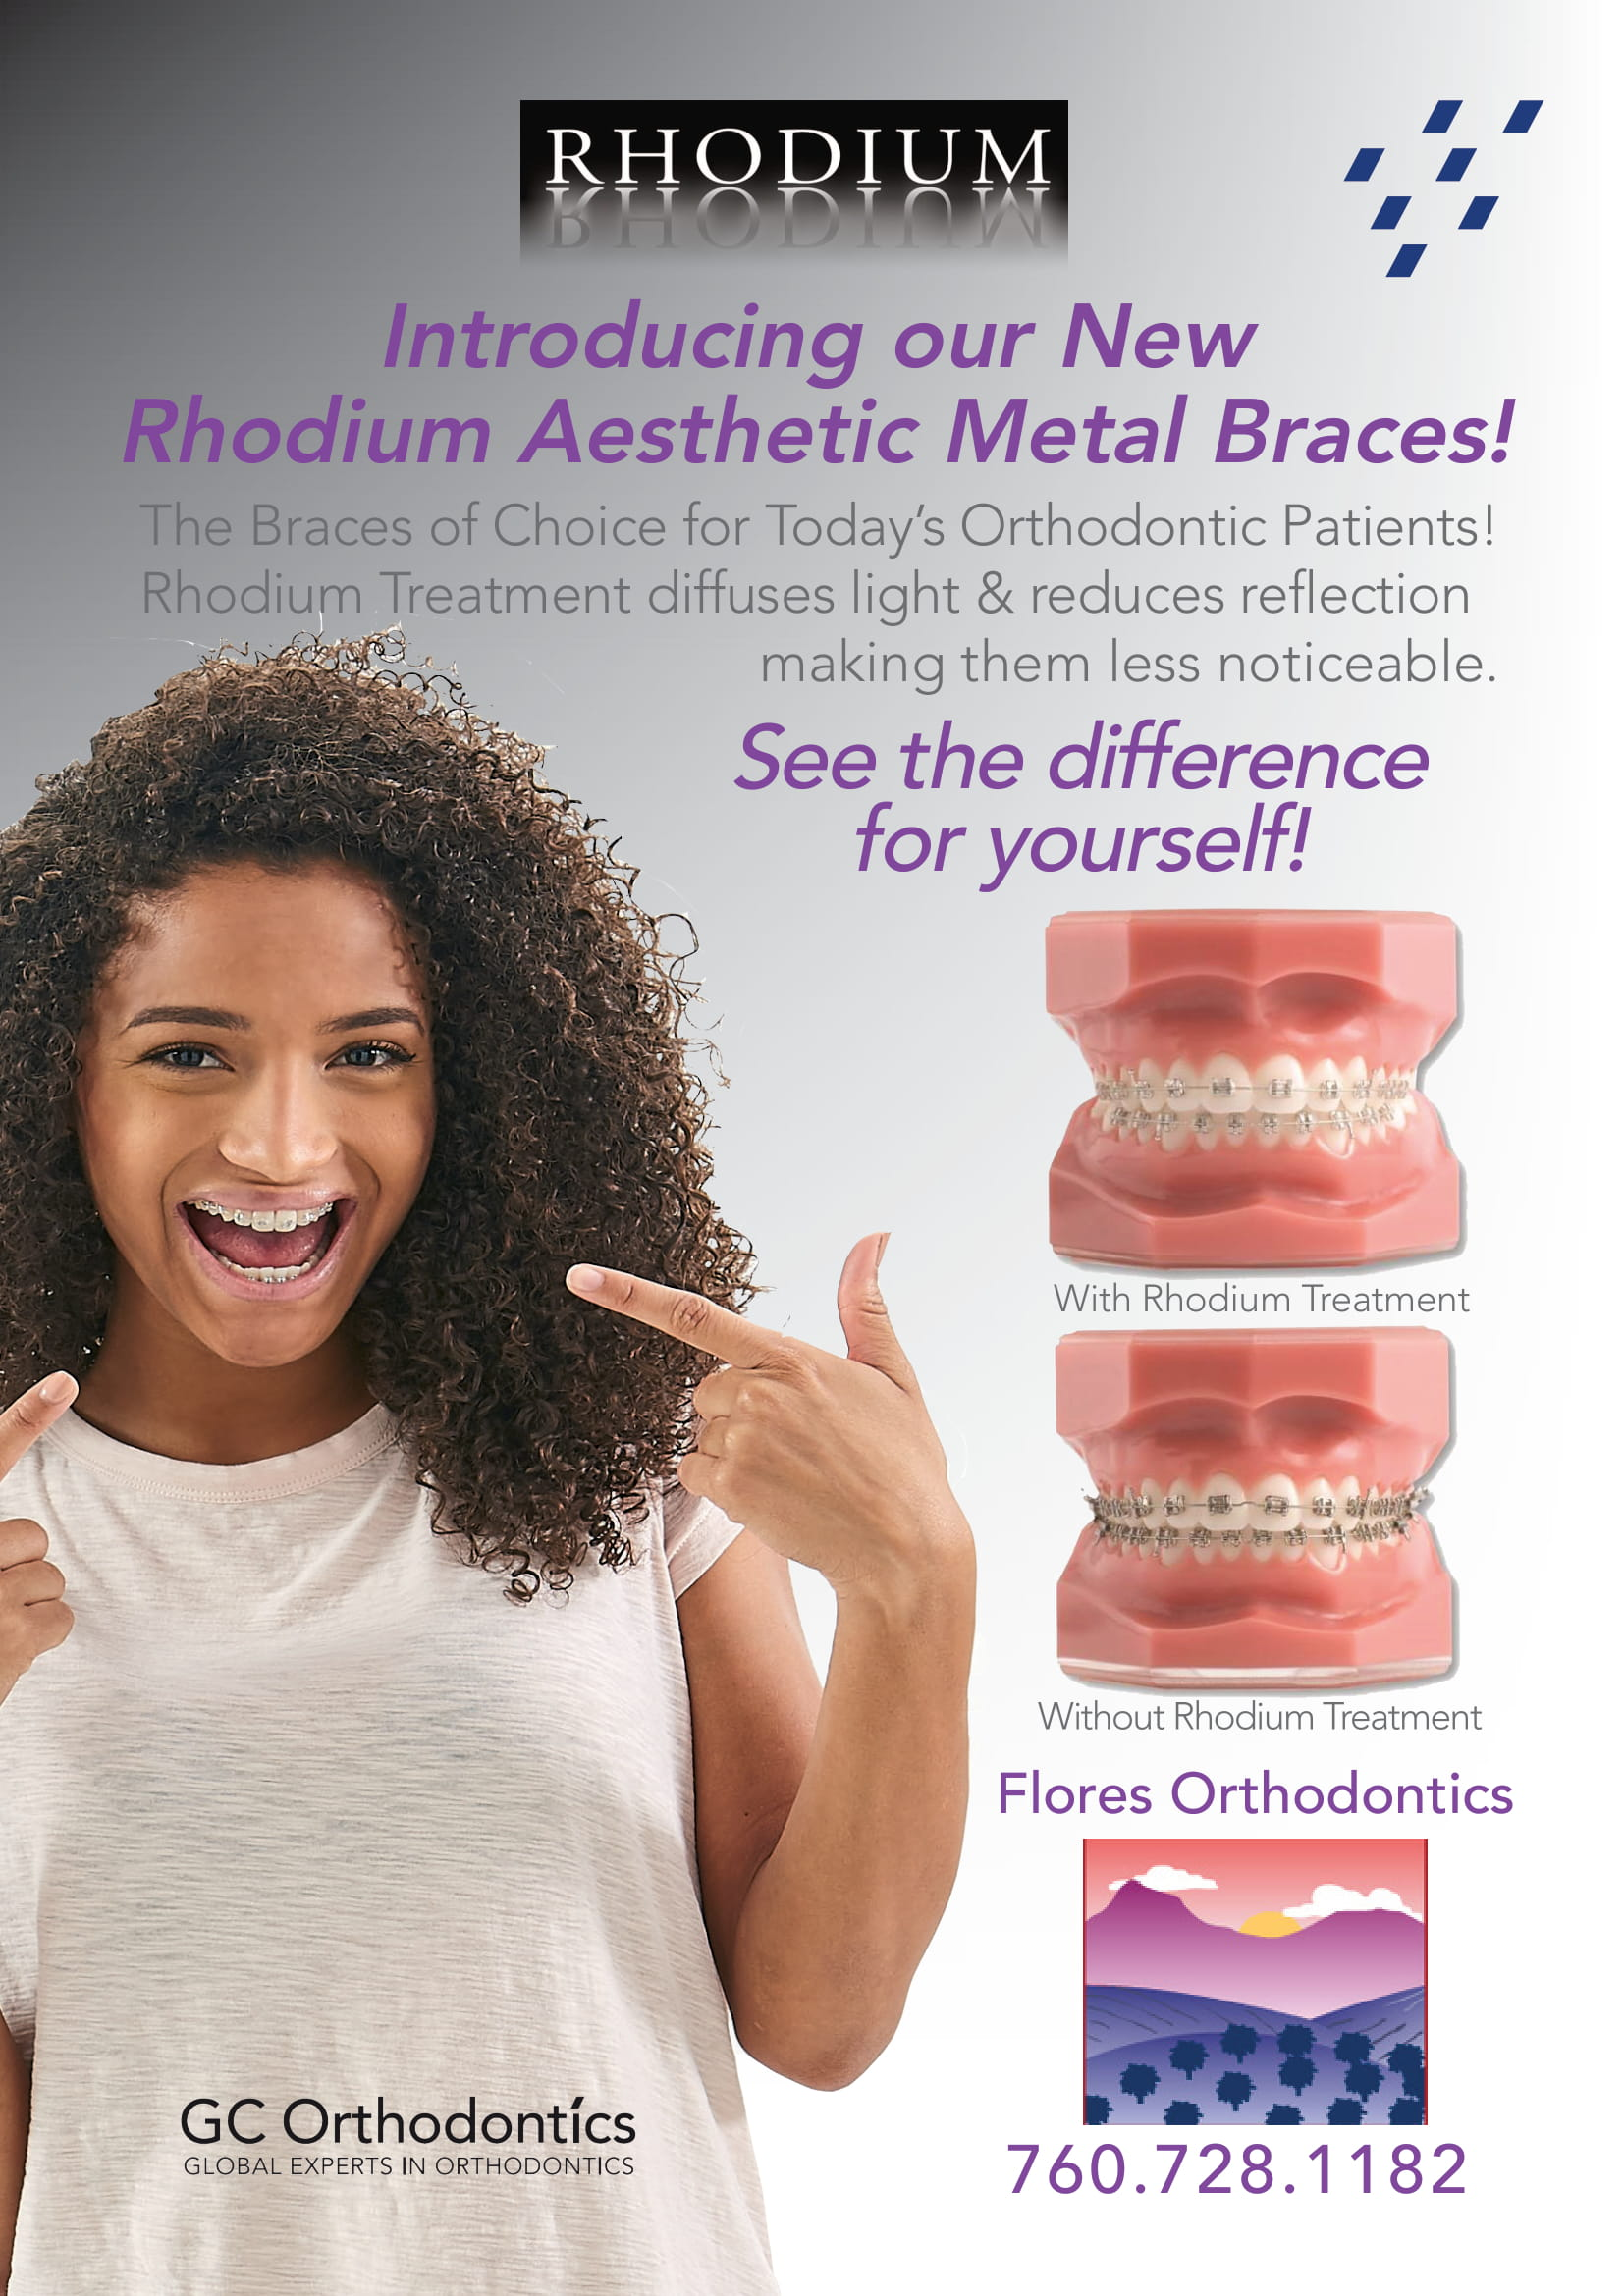 Rhodium Treatment